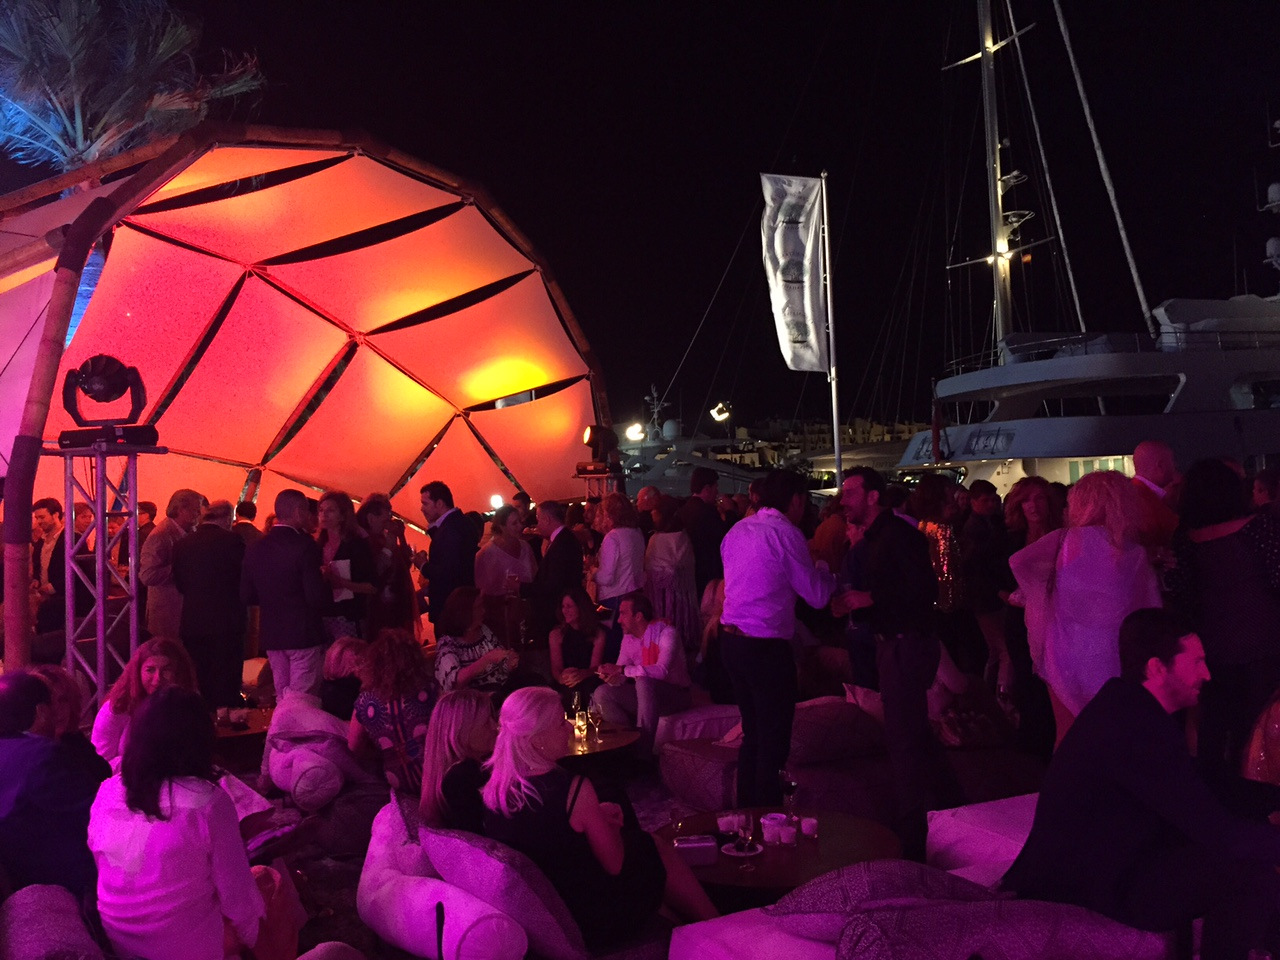 Ambiente de la carpa en marbella luxury weekend